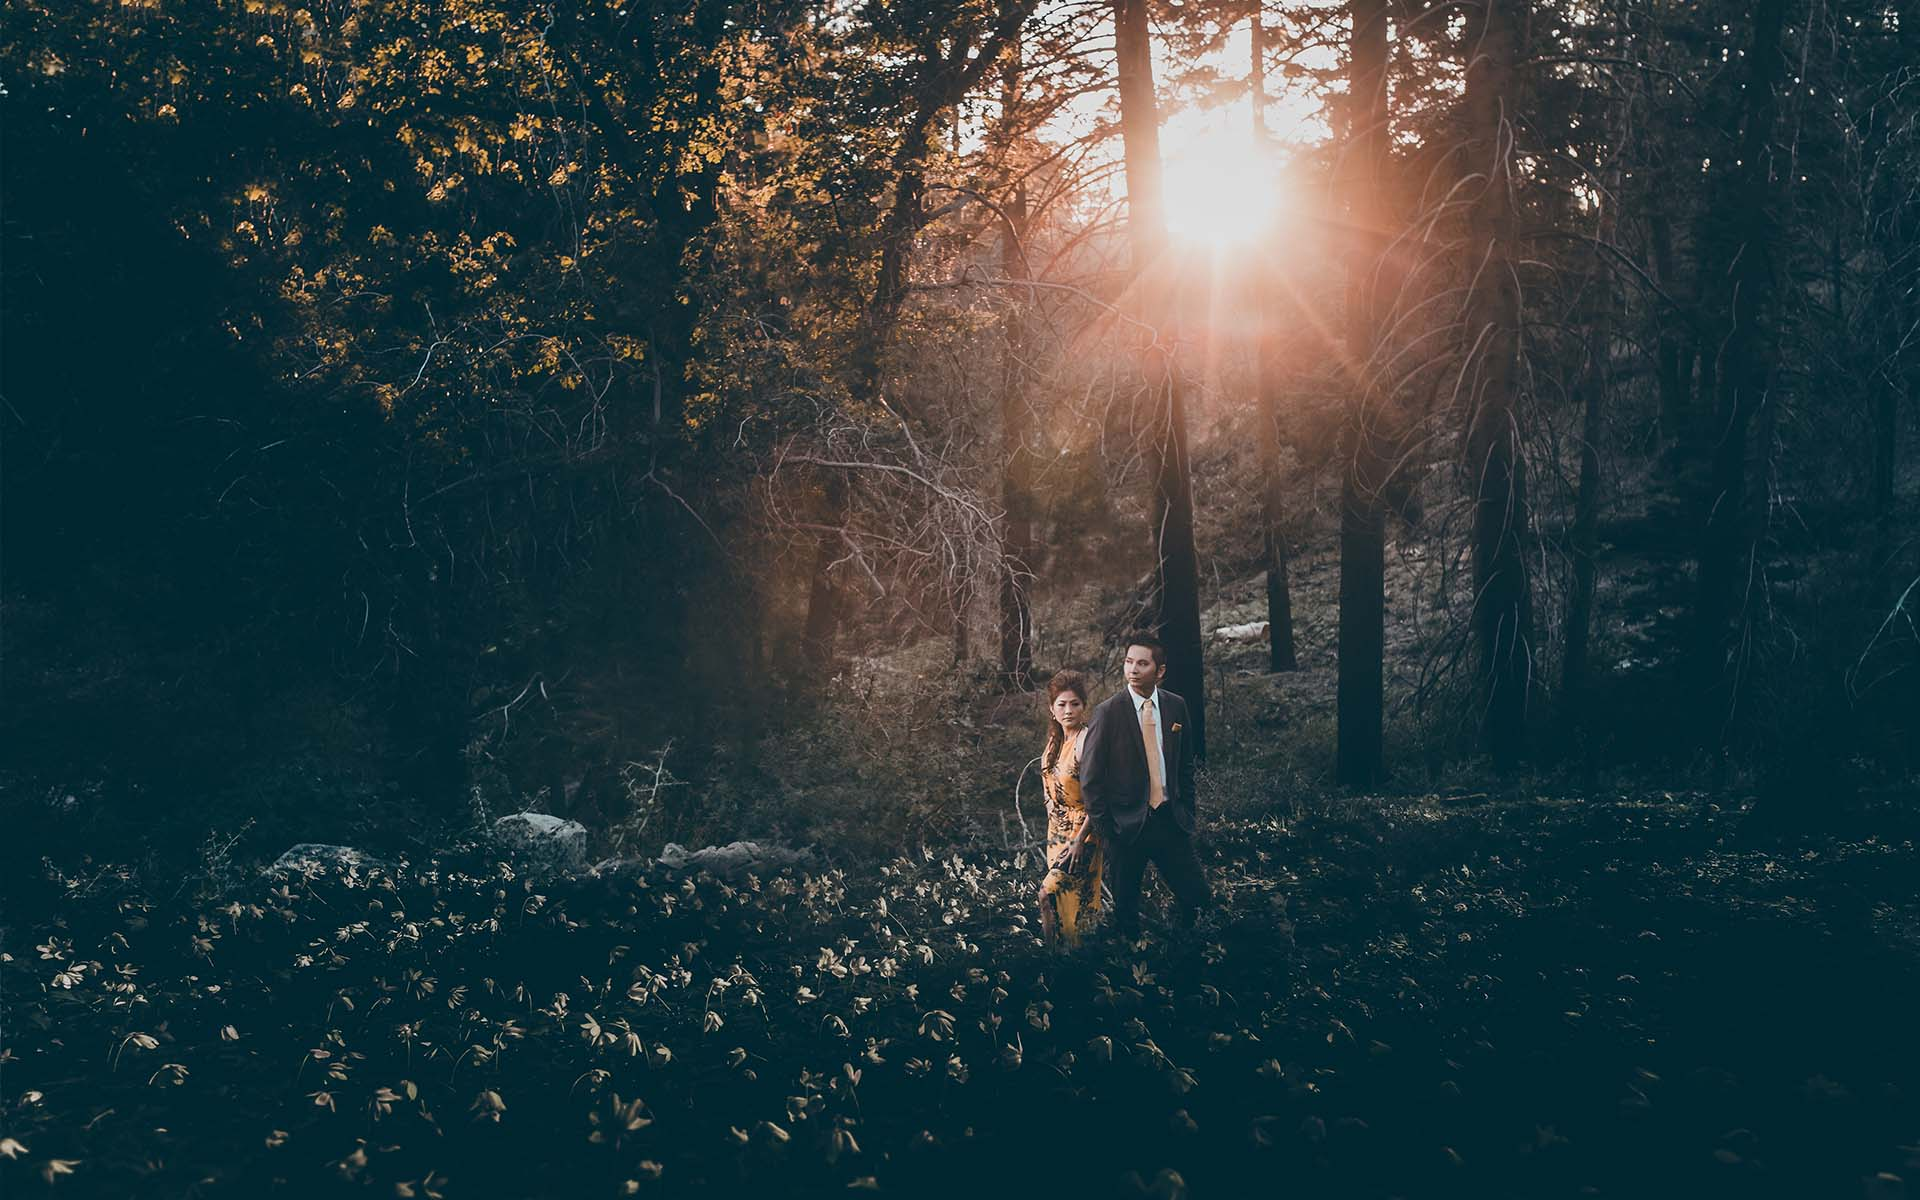 Forest sunset engagement session in San Bernardino Mountains by Lake Arrowhead